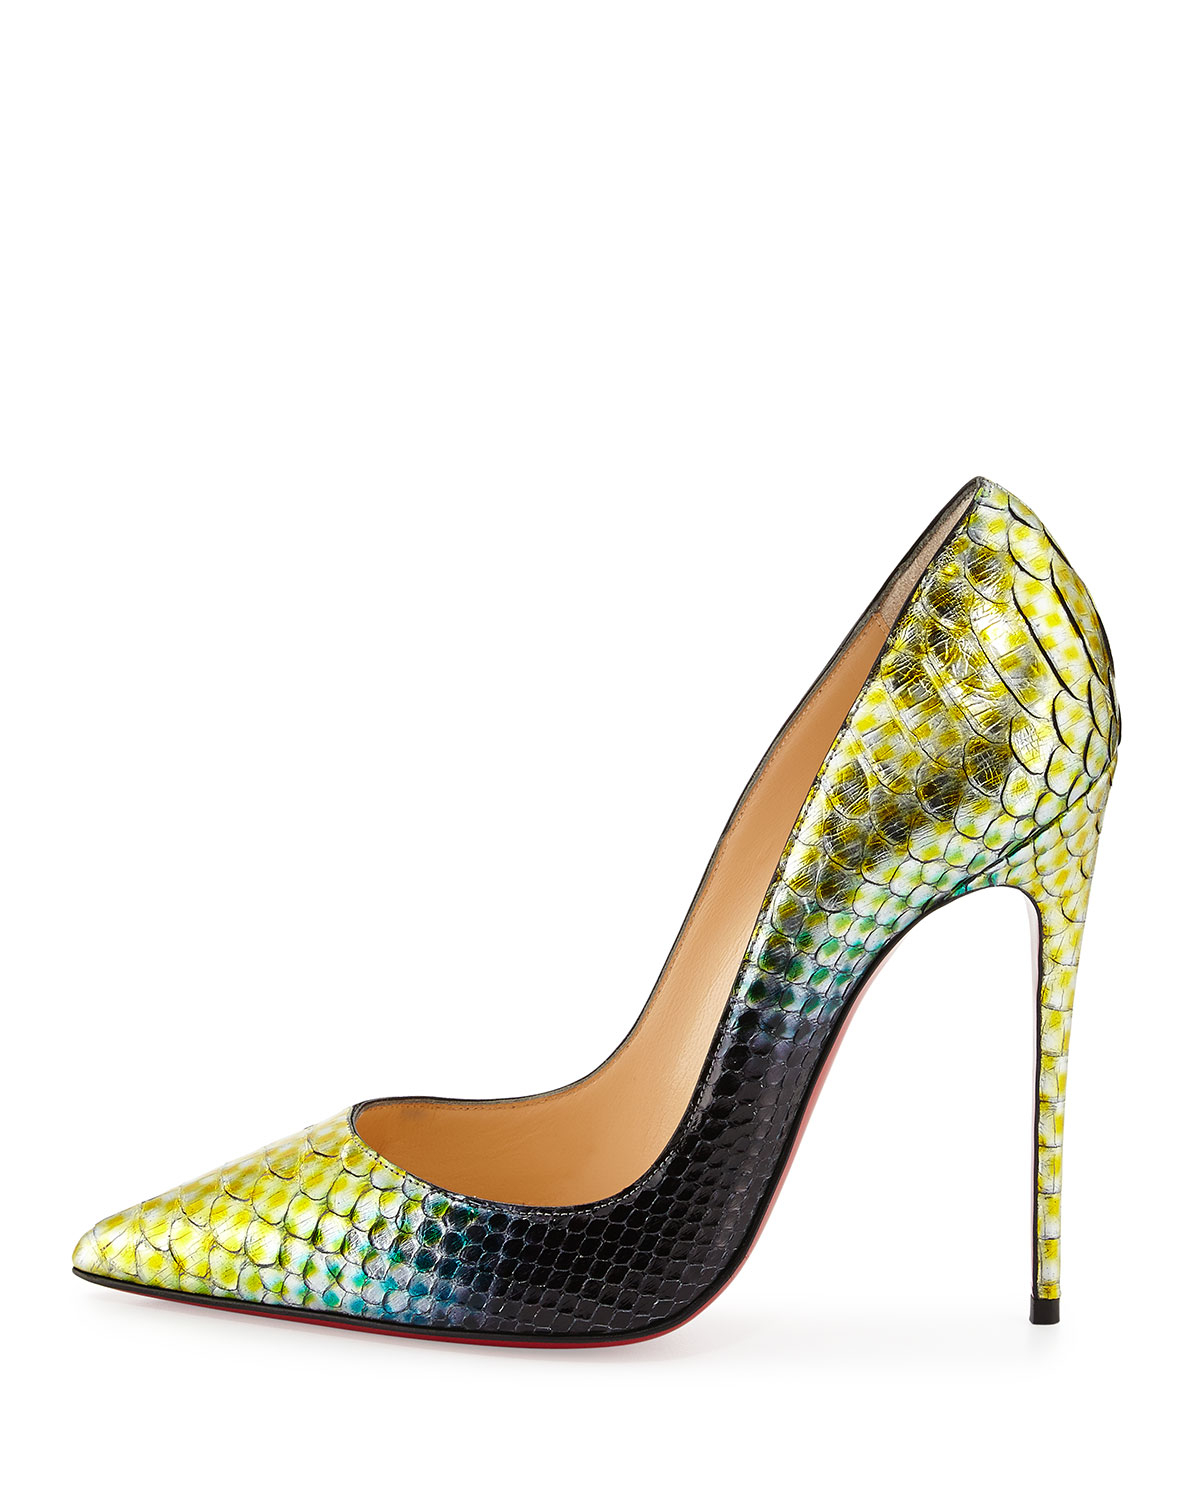 Artesur ? christian louboutin Pigalle python pumps Green and ...